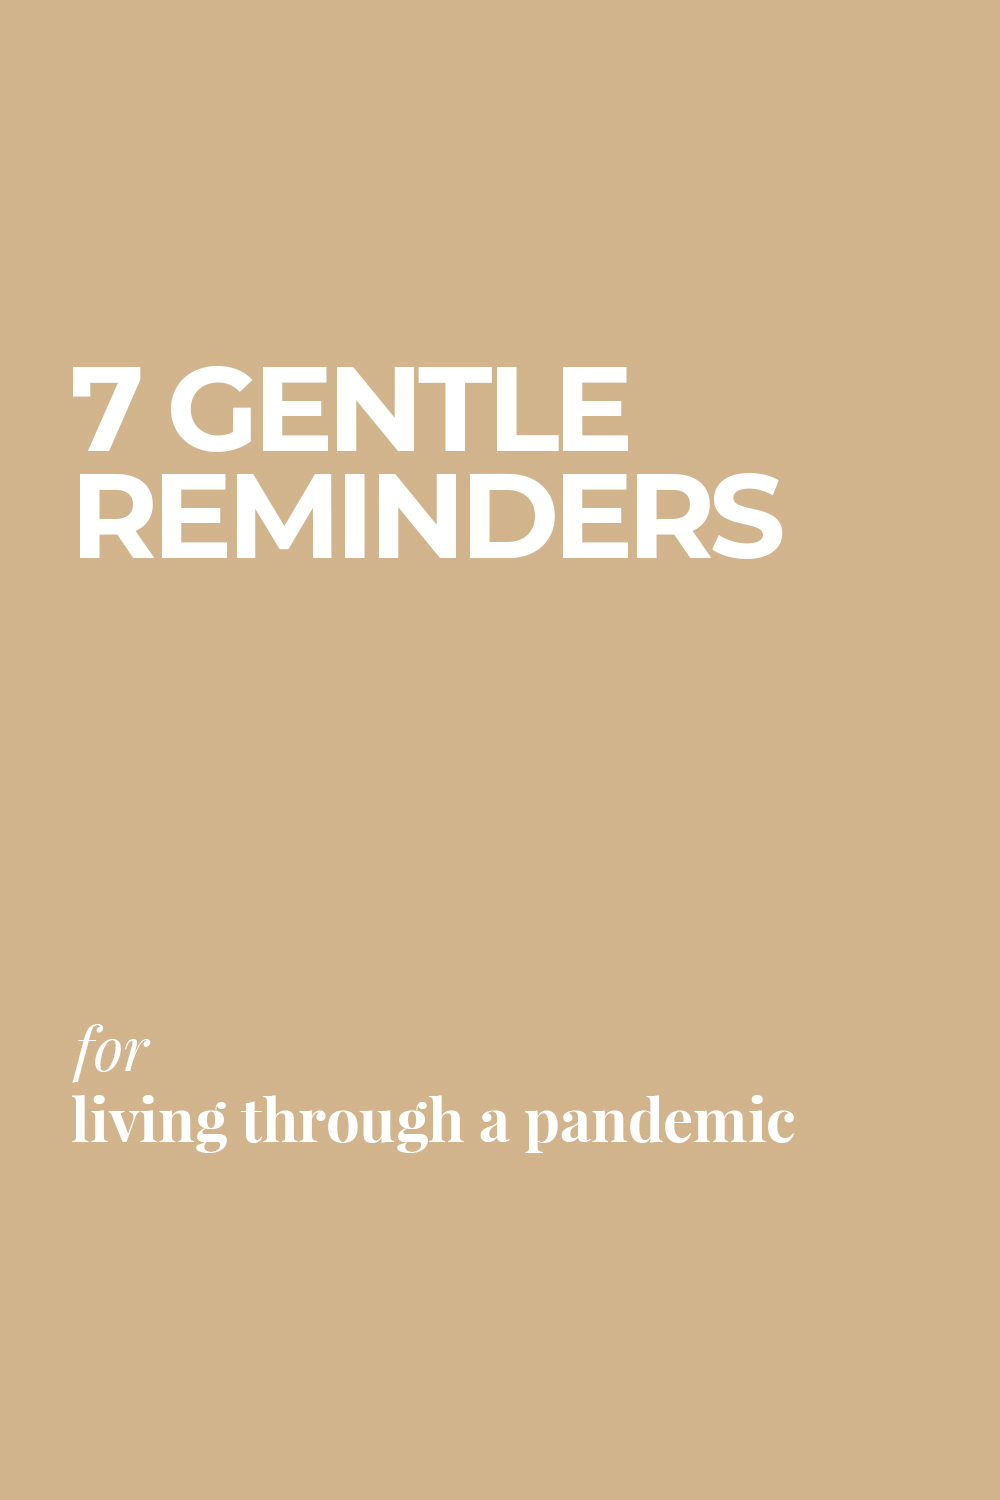 7 Gentle Reminders for Living Through a Pandemic